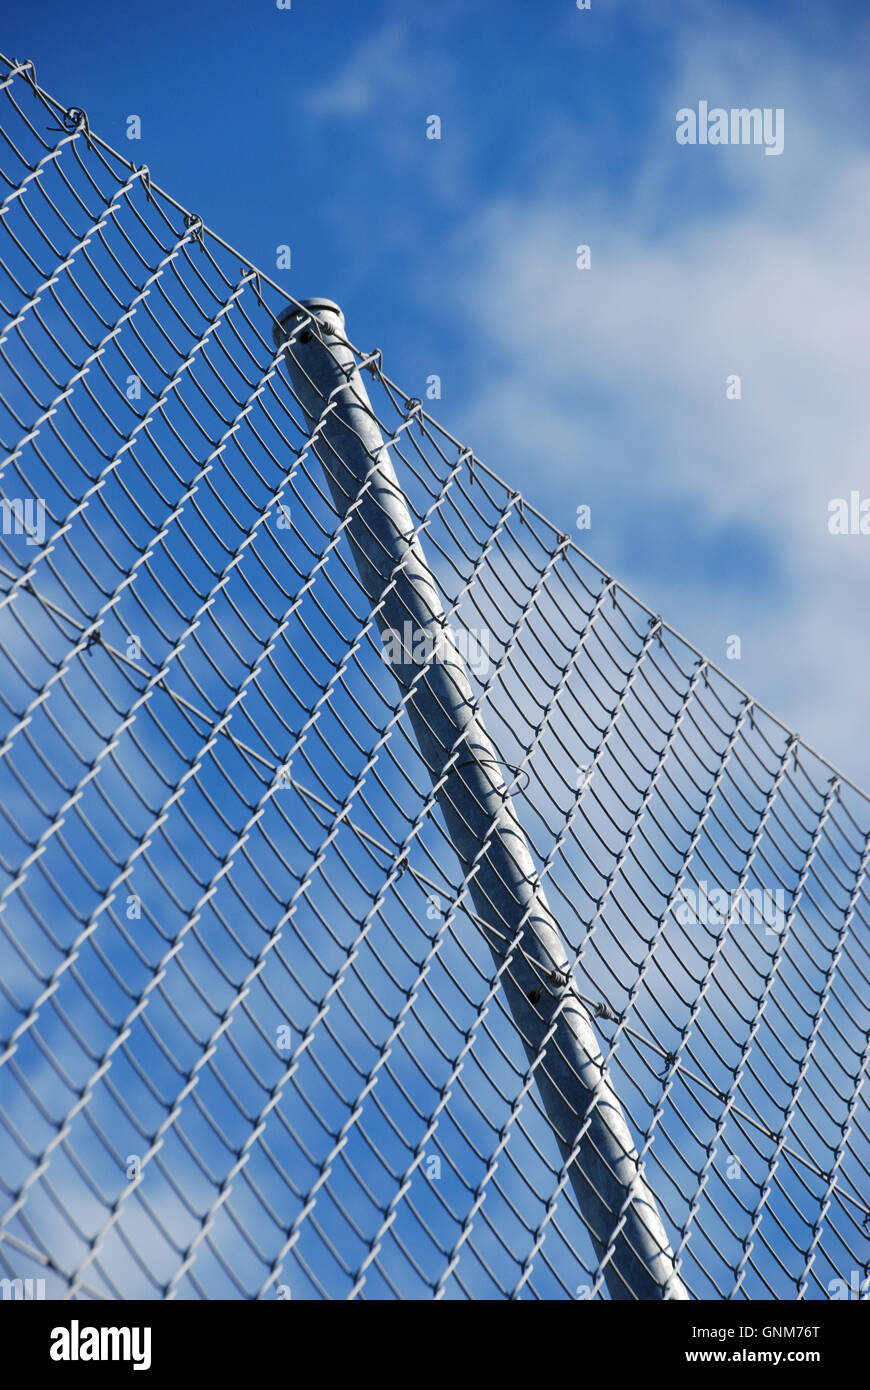 Wire security fencing an pole against the sky Stock Photo: 116614704 ...